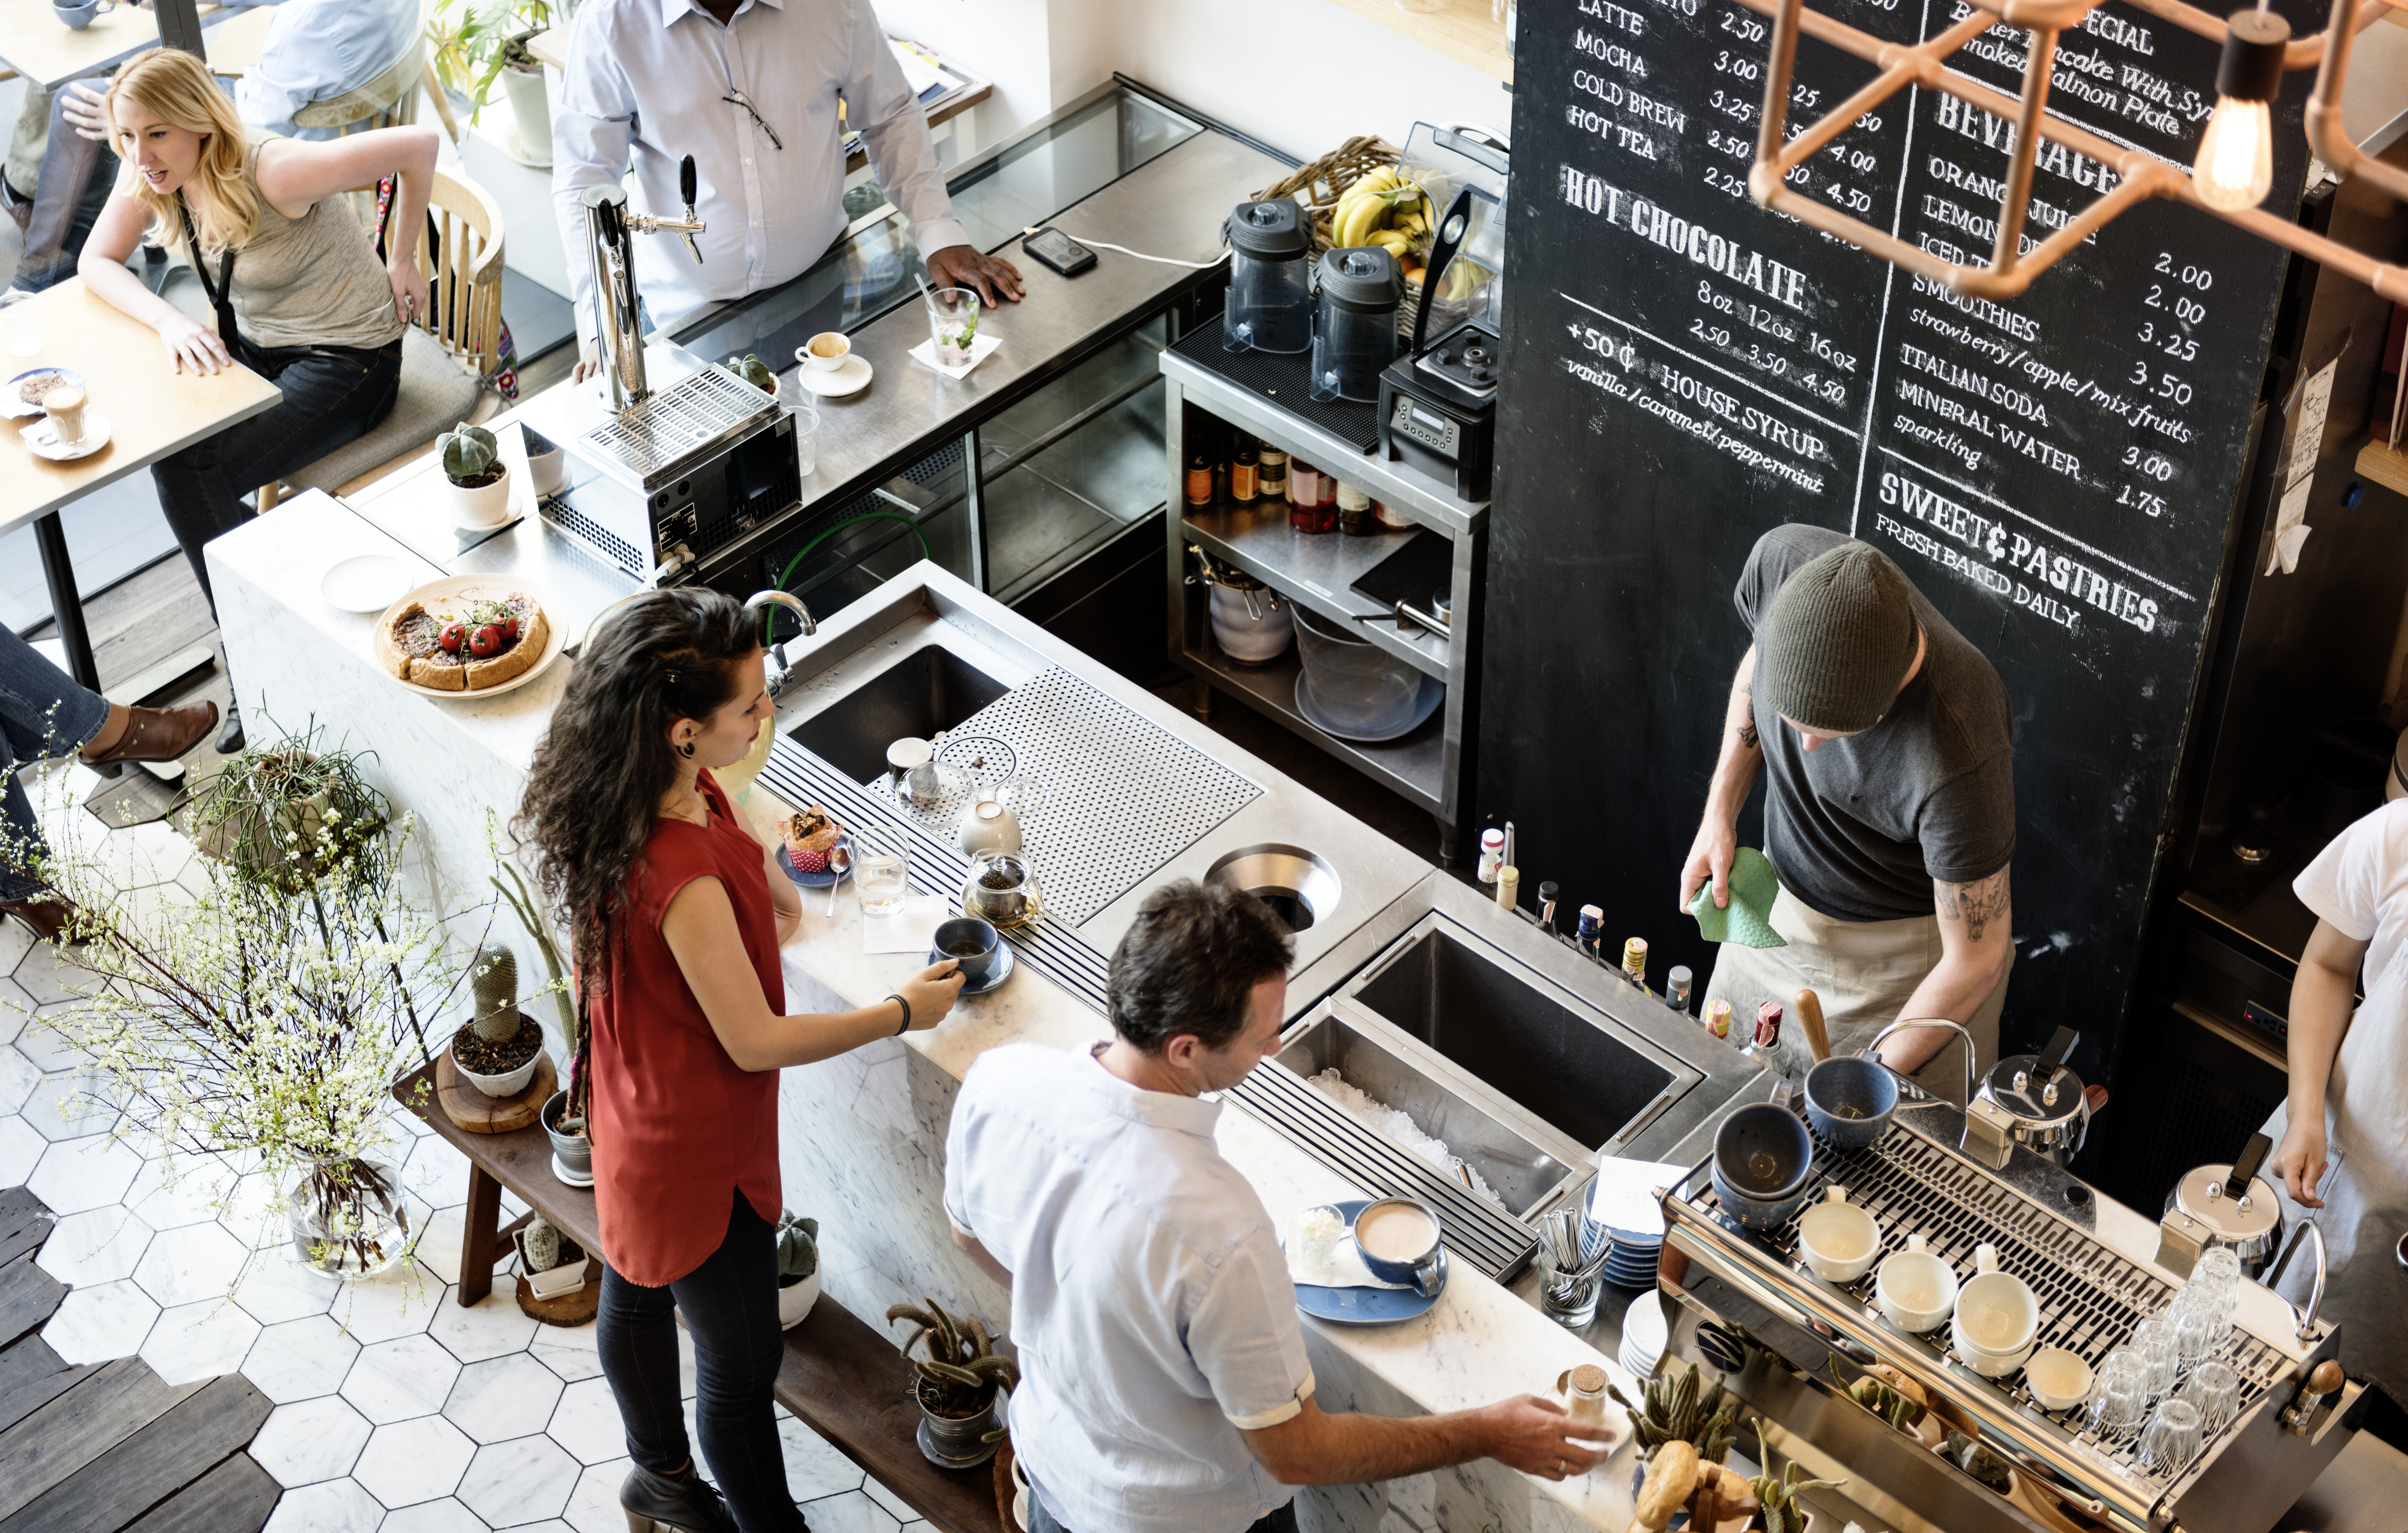 local-coffee-shop-with-people-buying-coffee